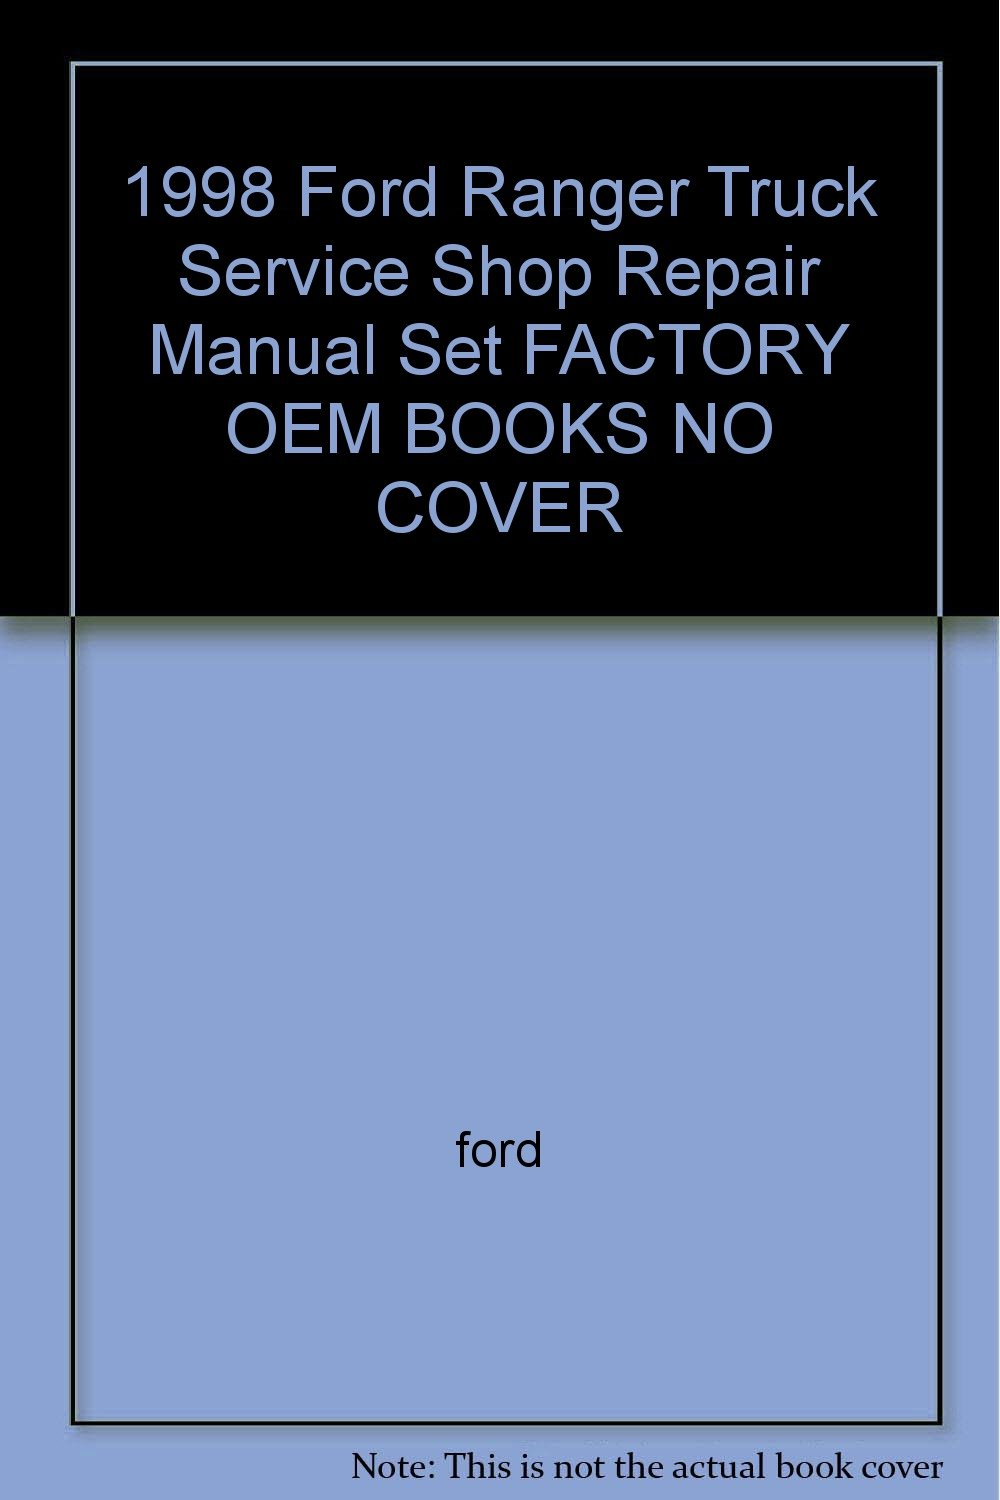 1998 Ford Ranger Truck Service Shop Repair Manual Set FACTORY OEM BOOKS NO  COVER: ford: Amazon.com: Books